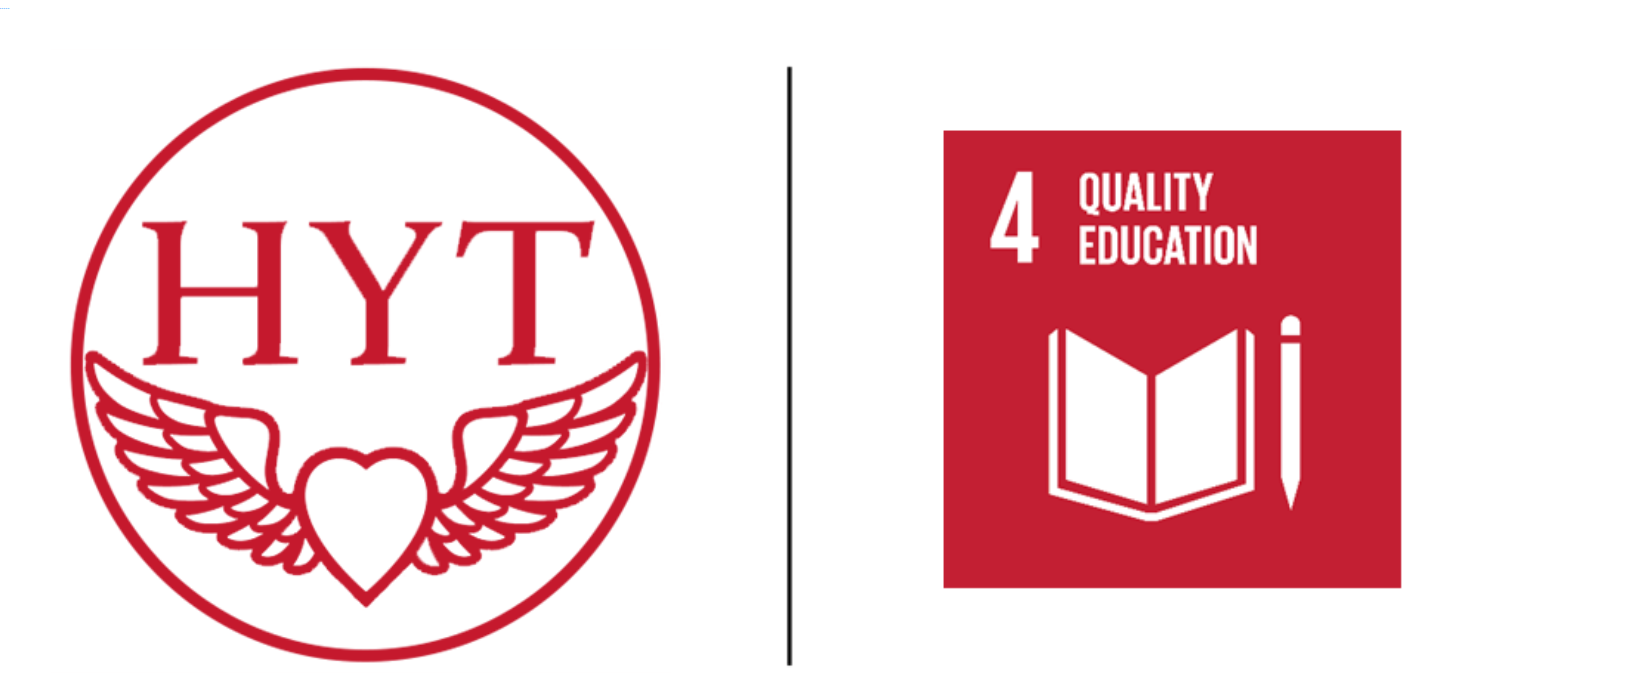 HYT supports Quality Education